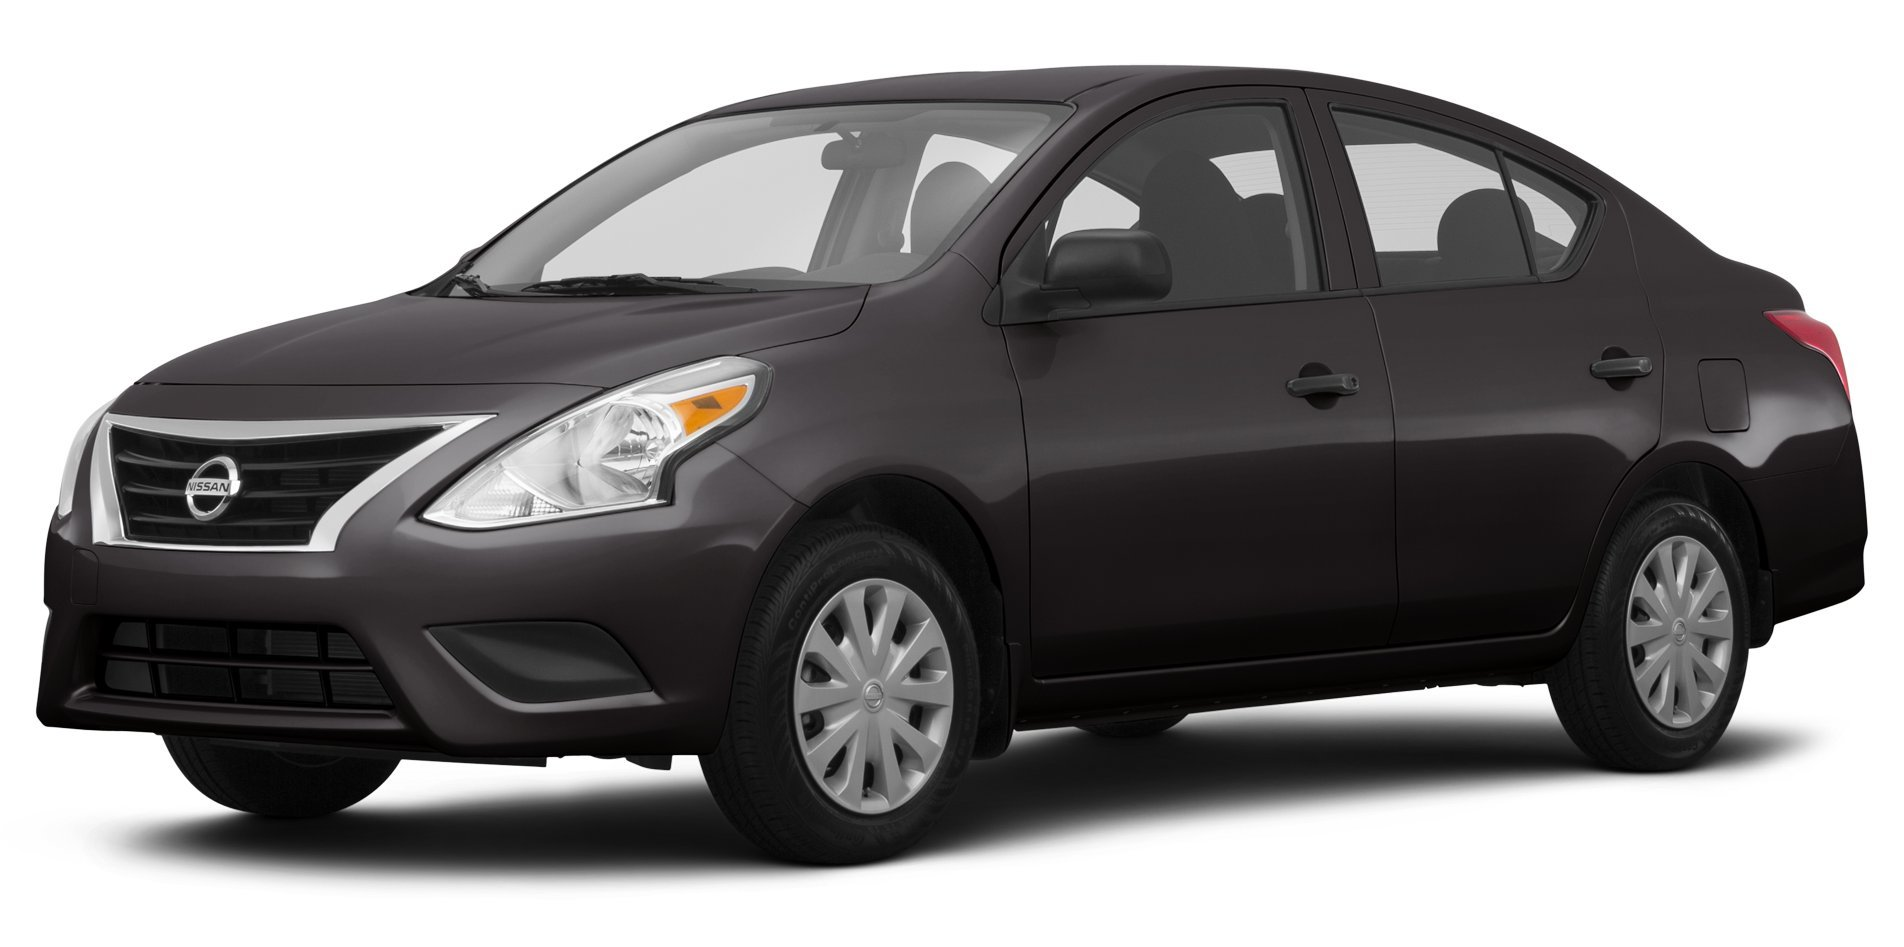 Amazon.com: 2015 Mitsubishi Mirage Reviews, Images, And